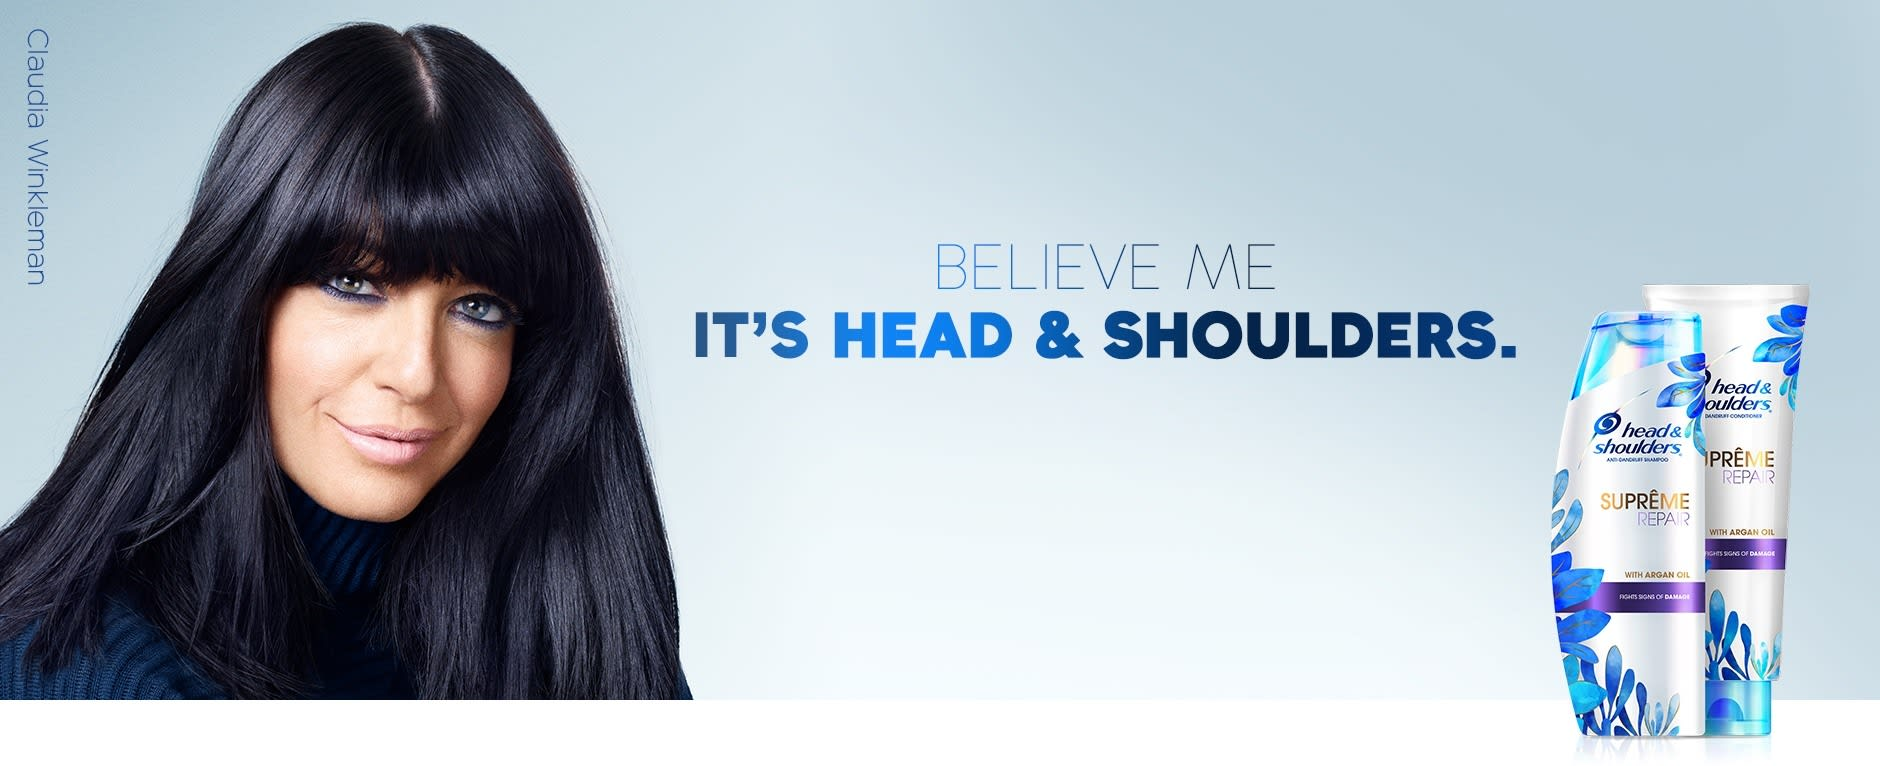 Believe me. It's Head & Shoulders.